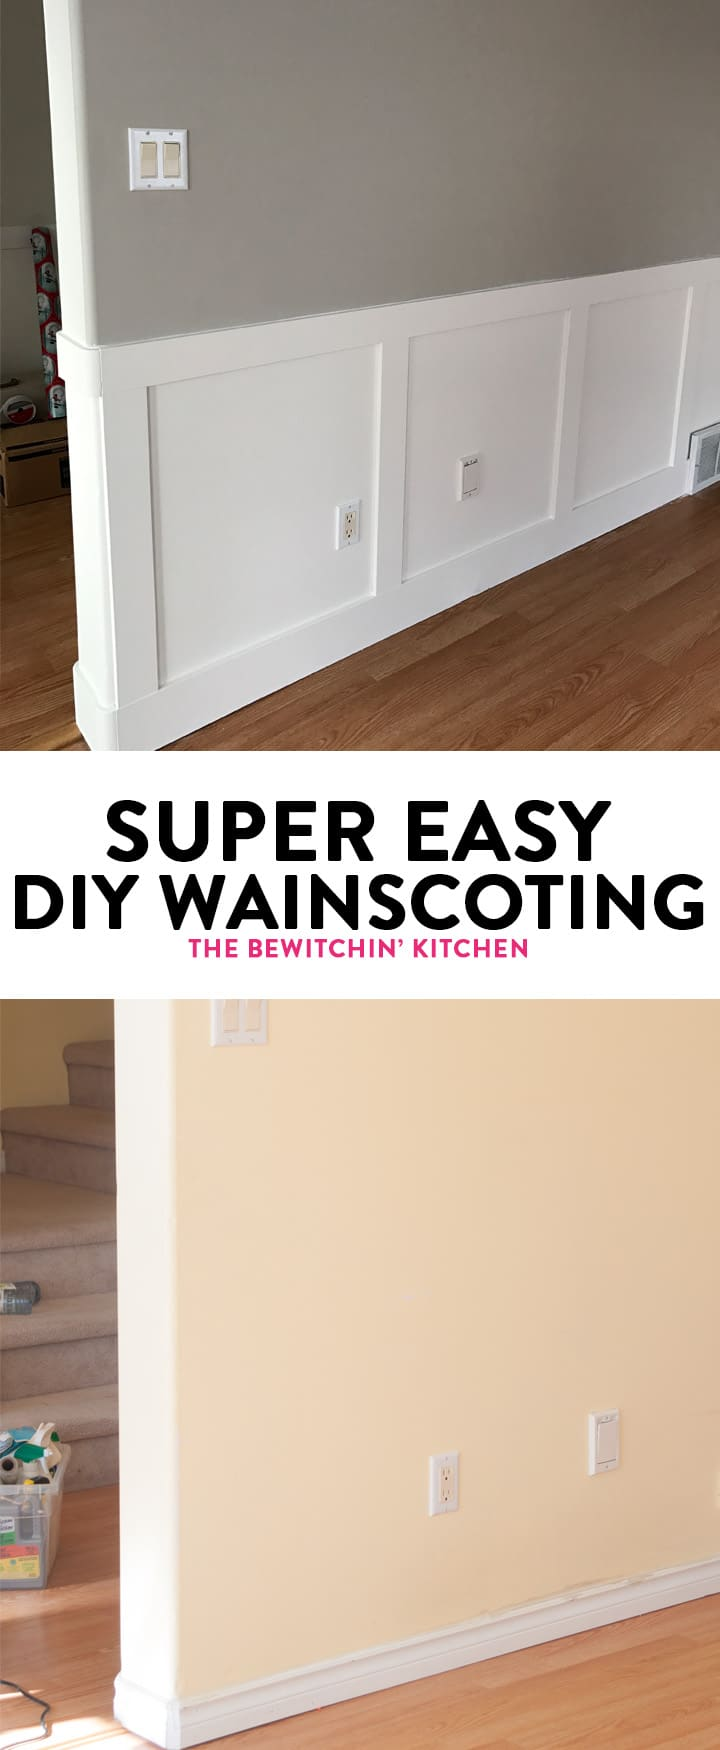 DIY Wainscoting renovation. I didn't think installing wainscotting would be so easy. Here is some inspiration, a how to, and my secret to getting started. Wainscoting paint color is Benjamin Moore Cloud White. Walls are both Revere Pewter and Classic Grey.